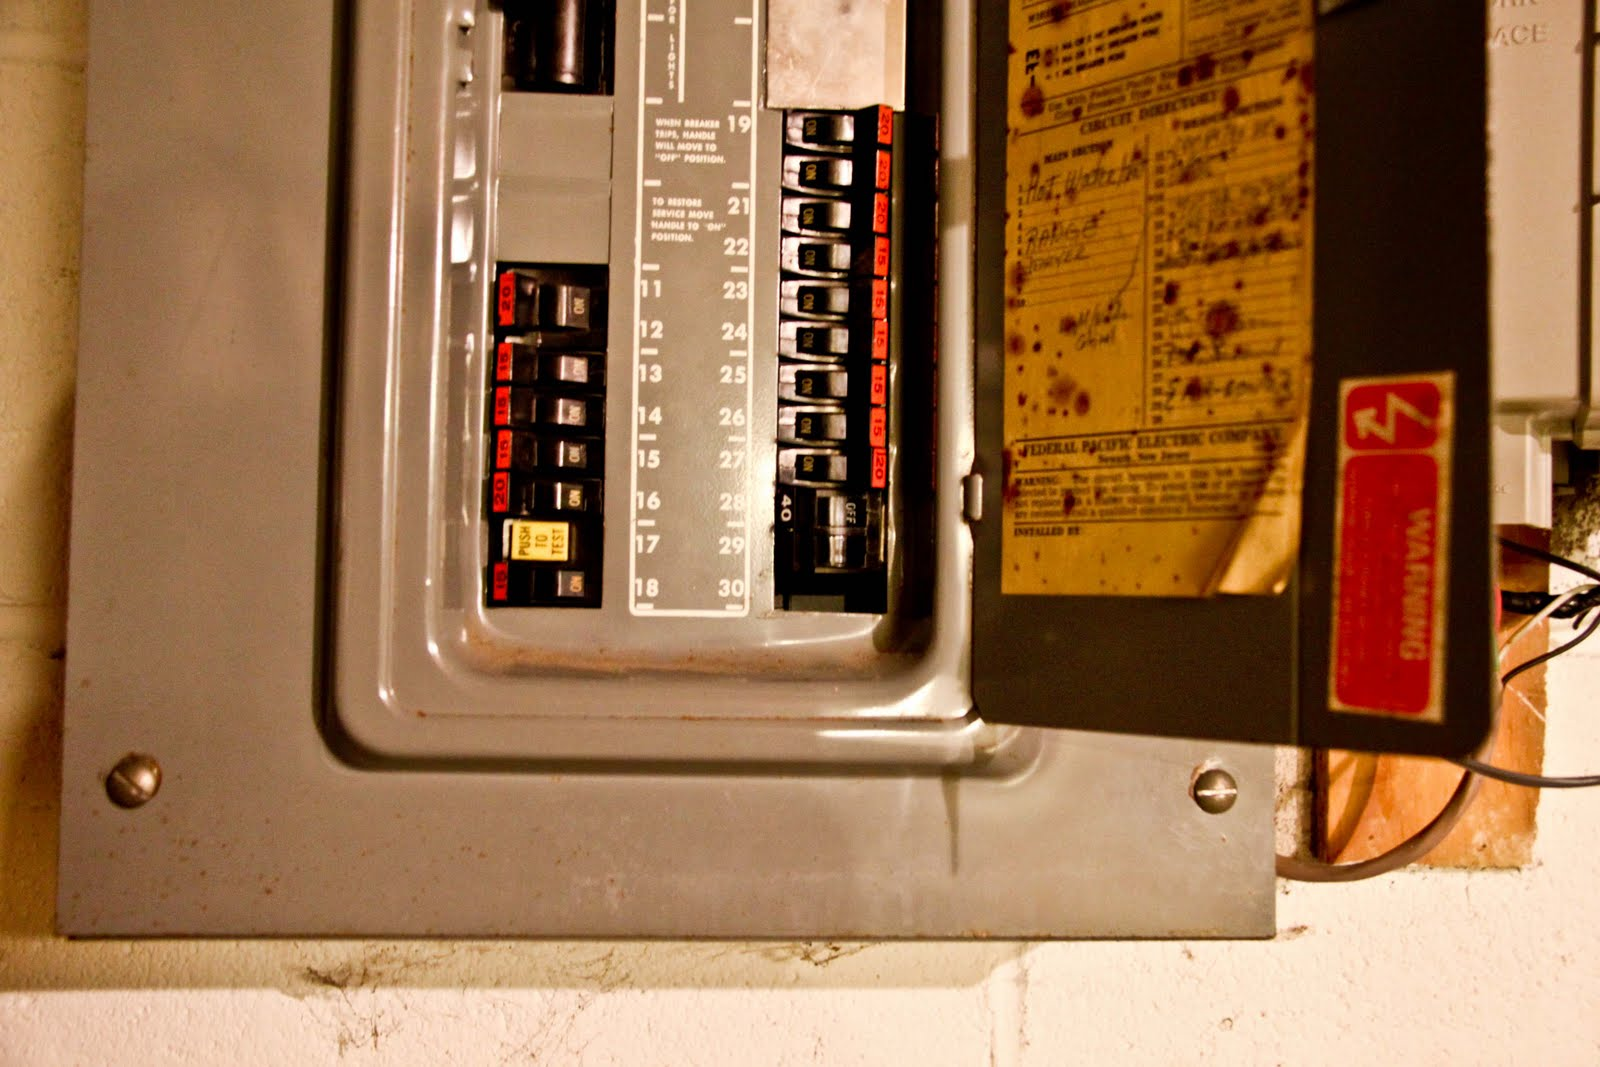 hight resolution of house fuse box location wiring diagram data val house fuse box location